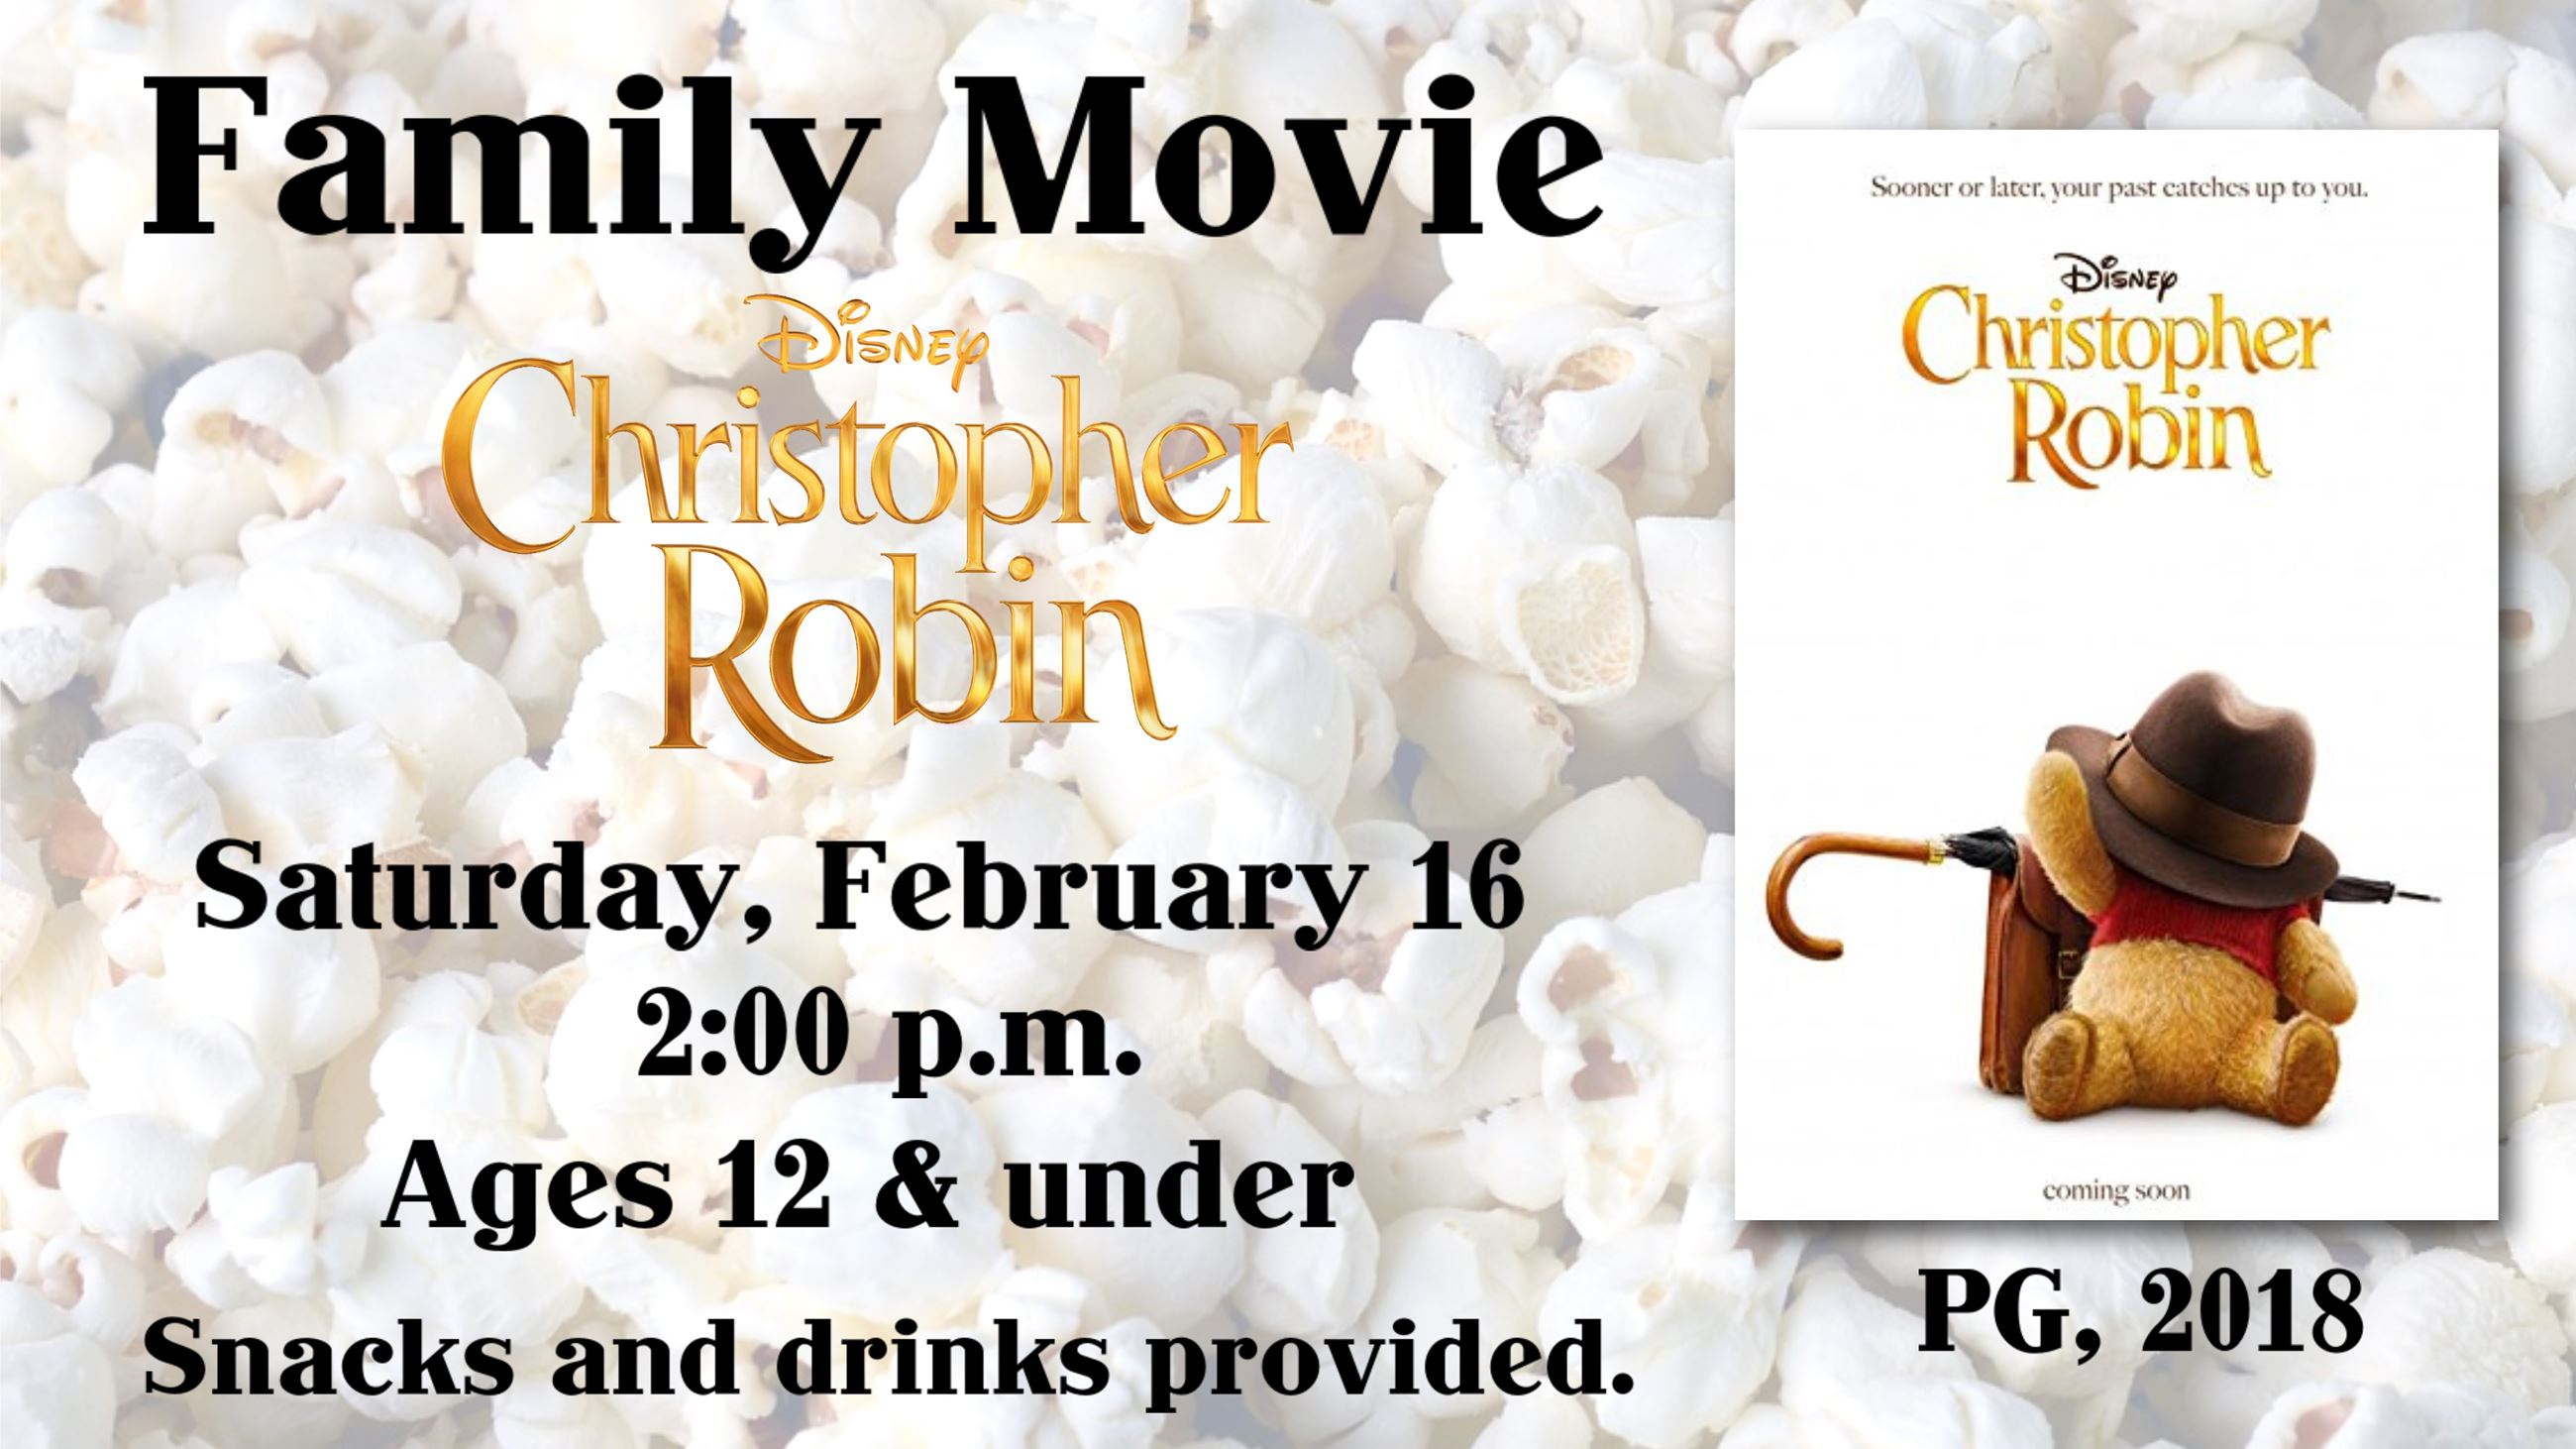 Family Movie- Christopher Robin. February 16 @ 2:00 p.m. Snacks and drinks provided.